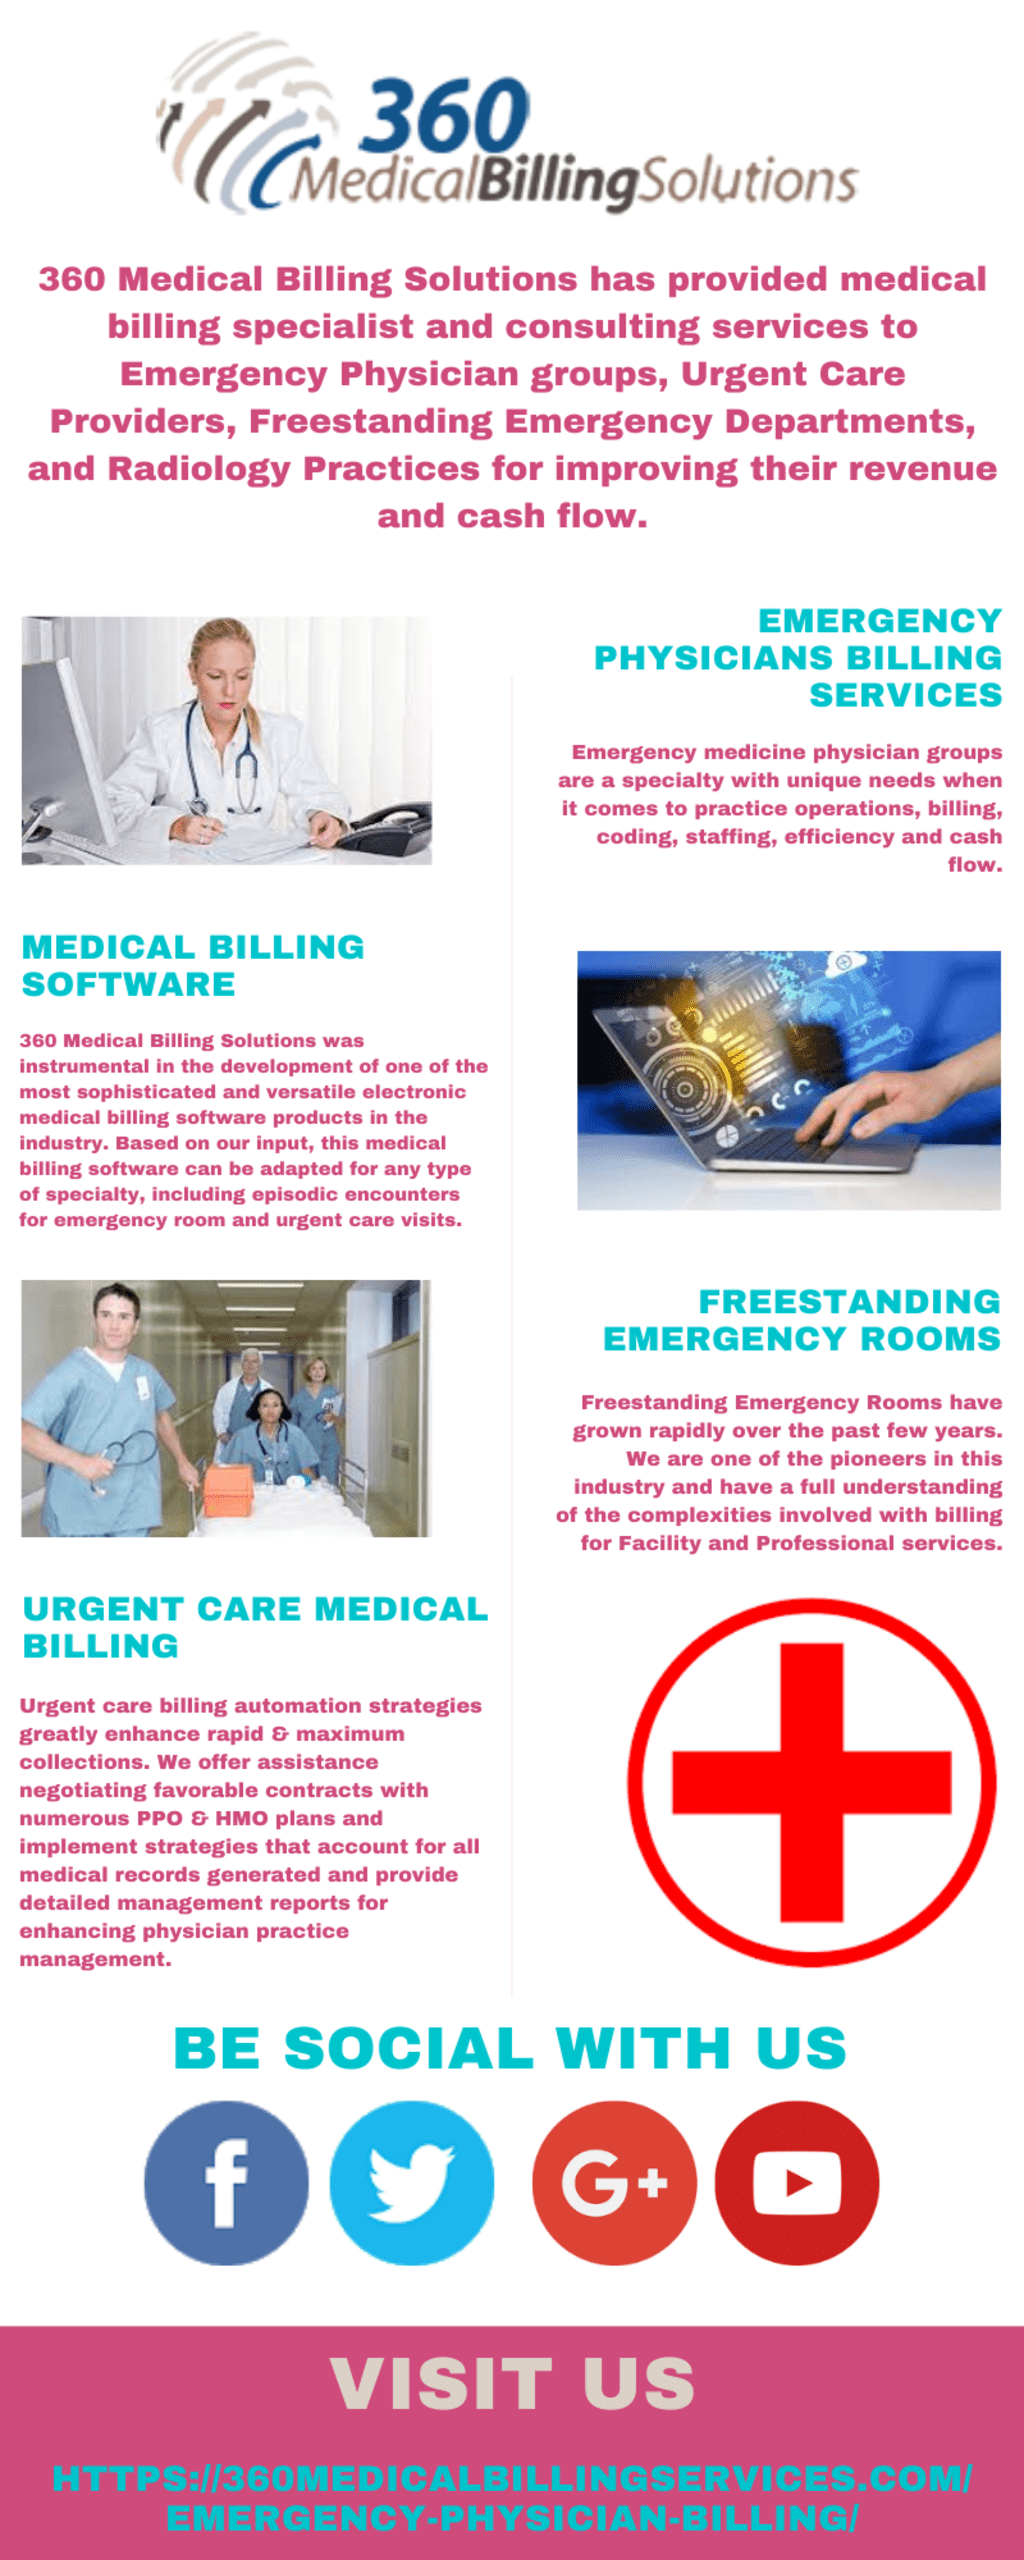 Emergency Physicians Billing Services - 360 Medical Billing ... via 360 Medical Billing Solutions